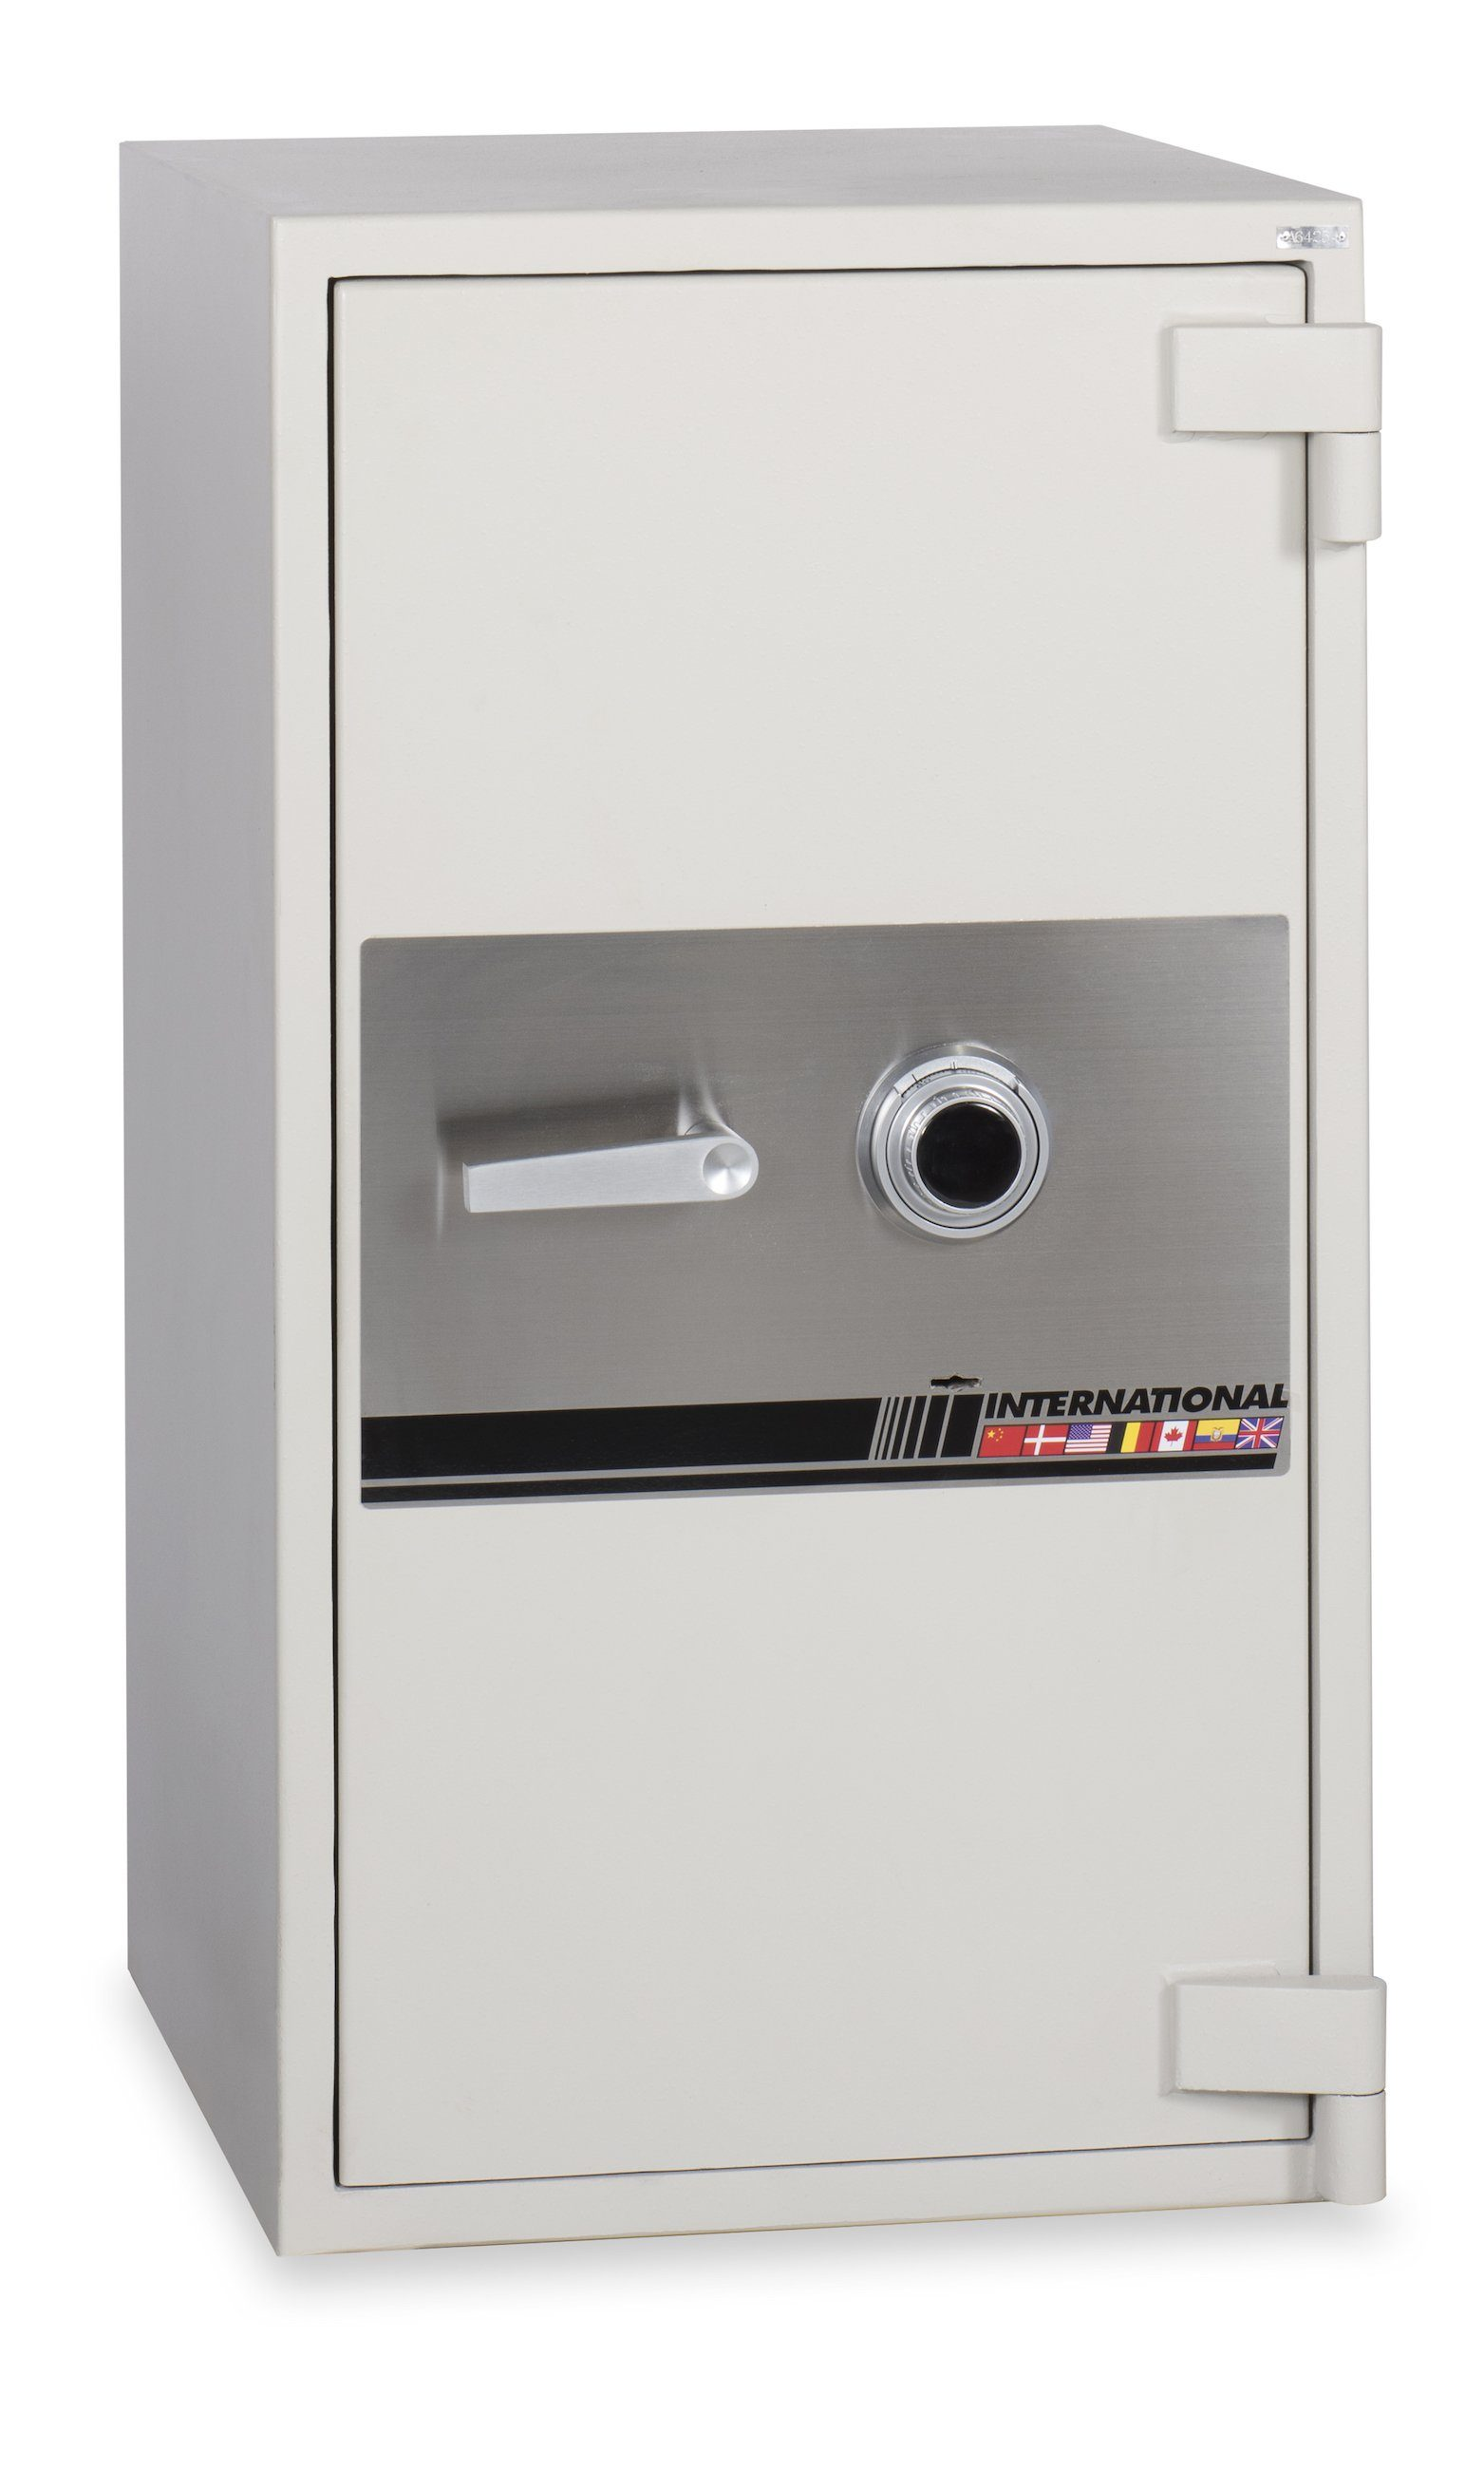 High Security Burglar Fire Safes - SafeandVaultStore FT15-3417 TL-15 High Security Burglar Fire Safe